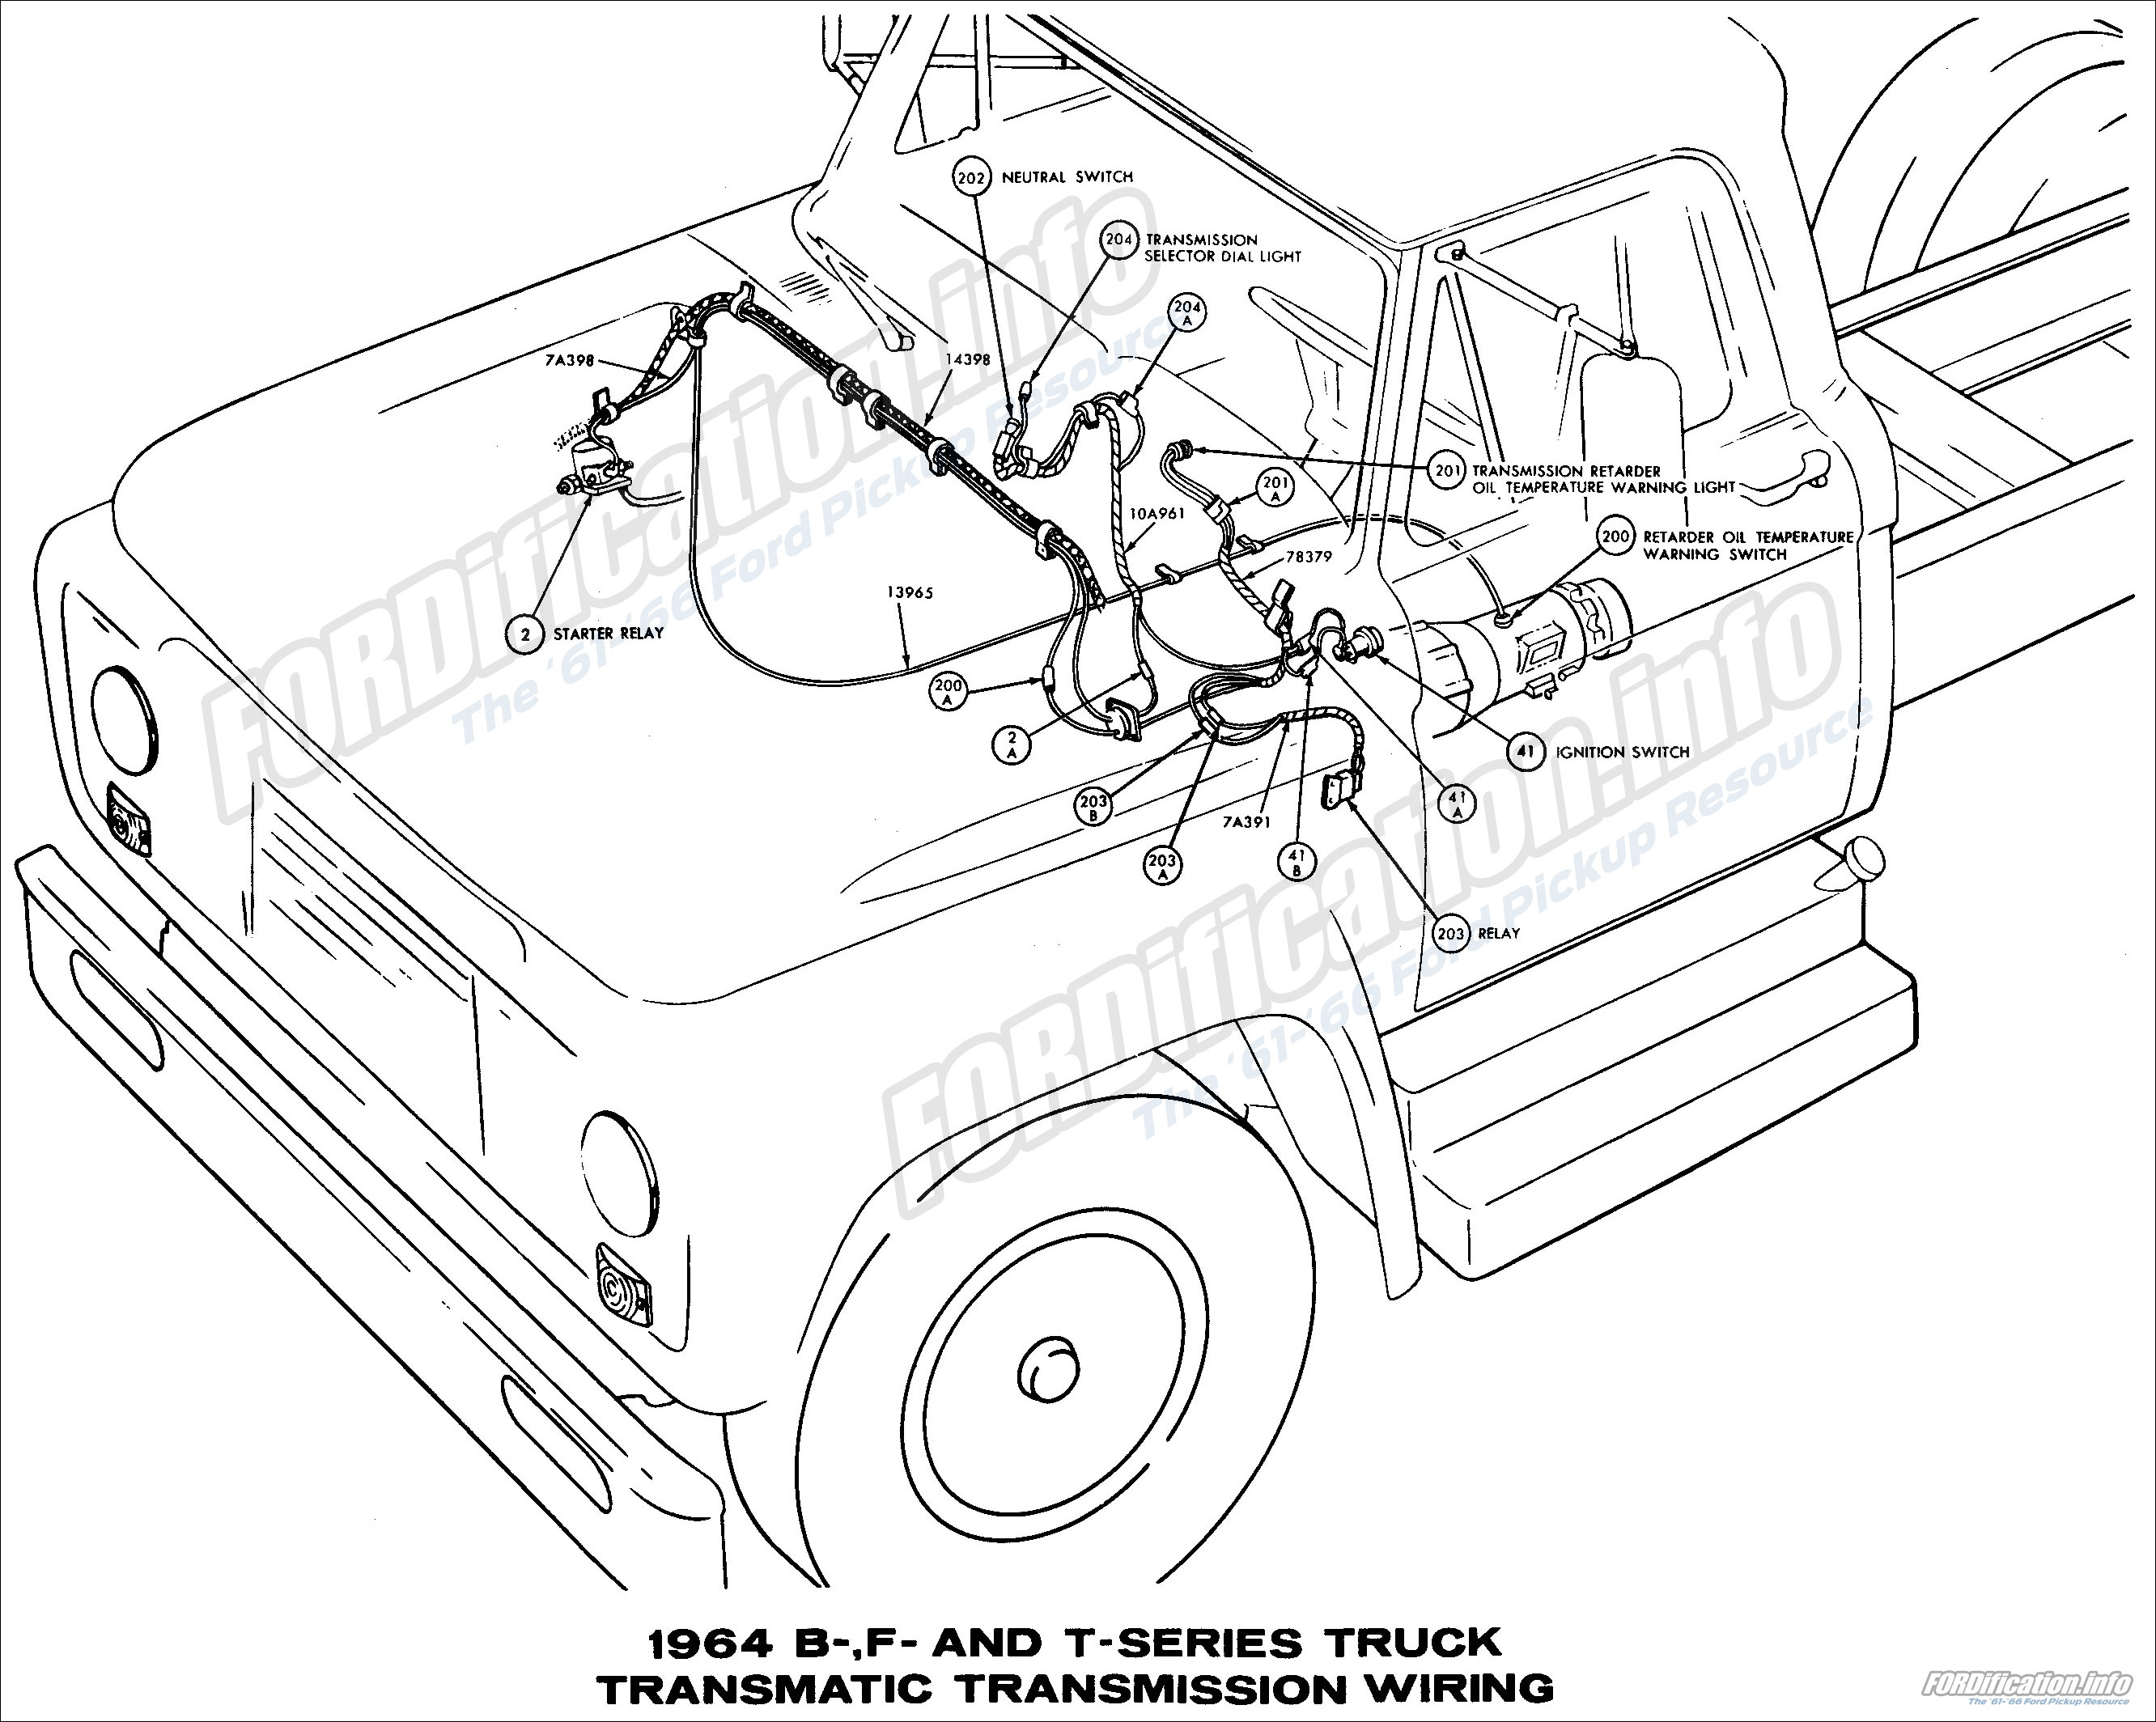 1964_13 1964 ford f100 wiring diagram 1966 ford truck wiring diagram 1964 Ford Fairlane at crackthecode.co